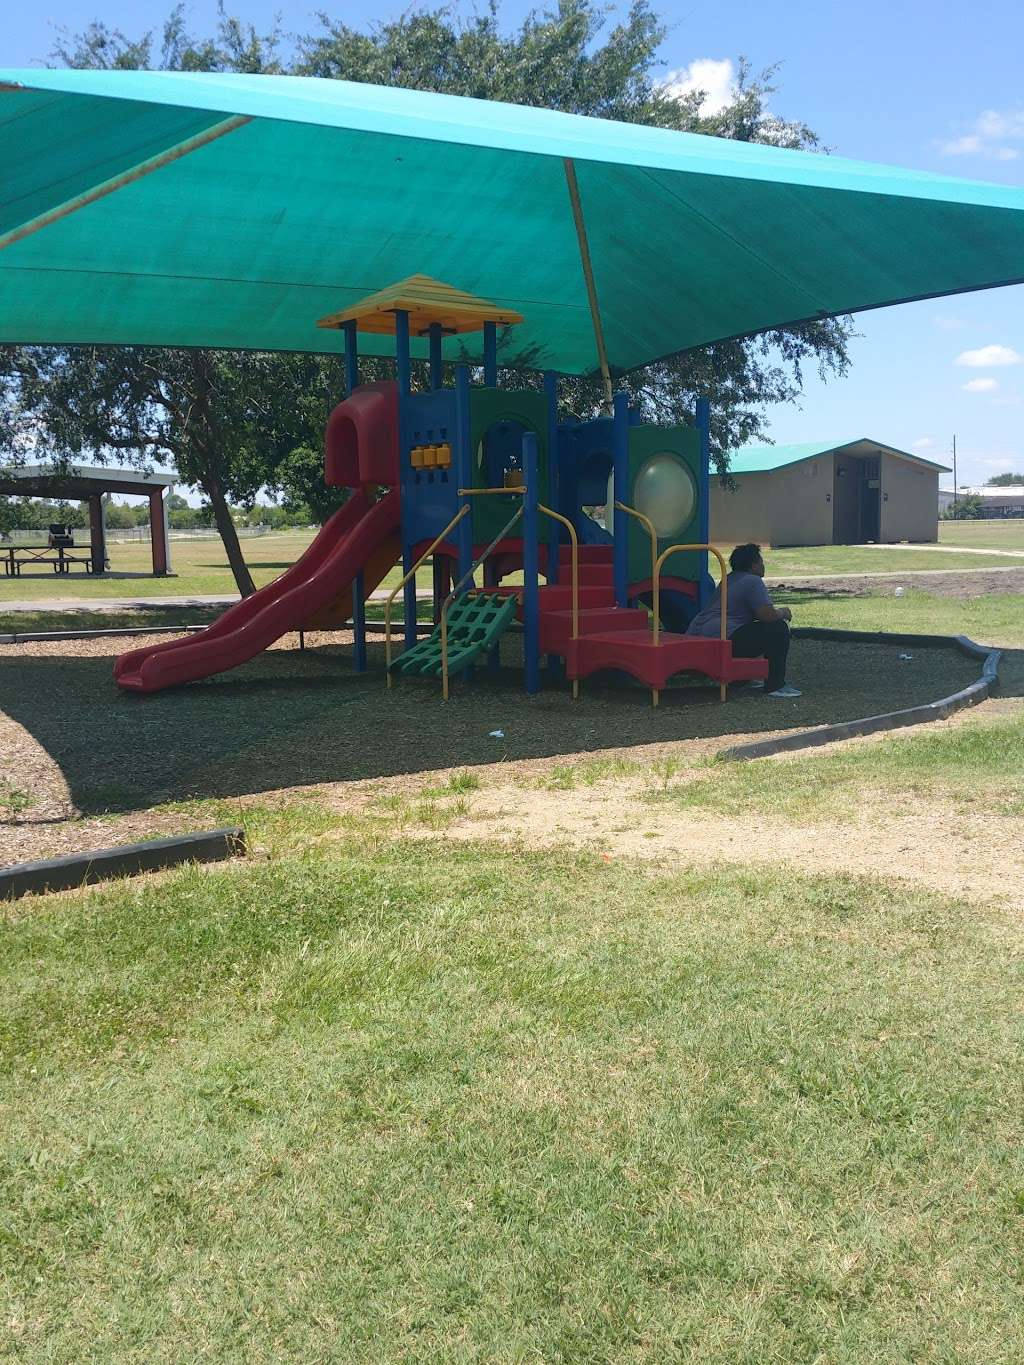 Four Corners Recreation Center - park  | Photo 7 of 10 | Address: 15700 Old Richmond Rd, Sugar Land, TX 77498, USA | Phone: (281) 835-9419